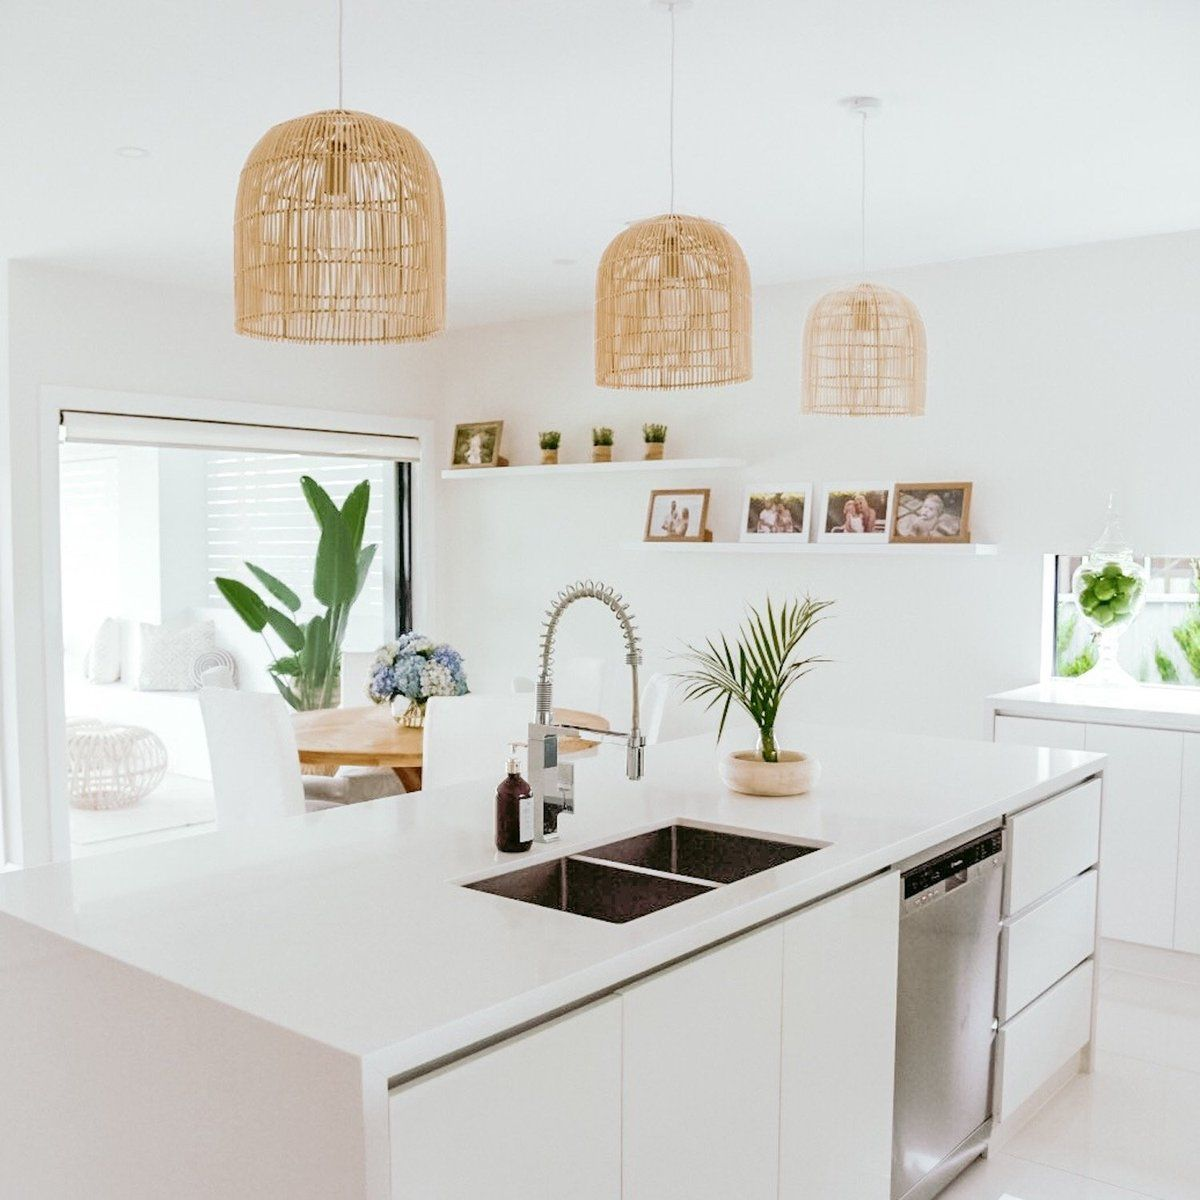 Natural Rattan Cane Pendant Light Siena 2 Sizes in